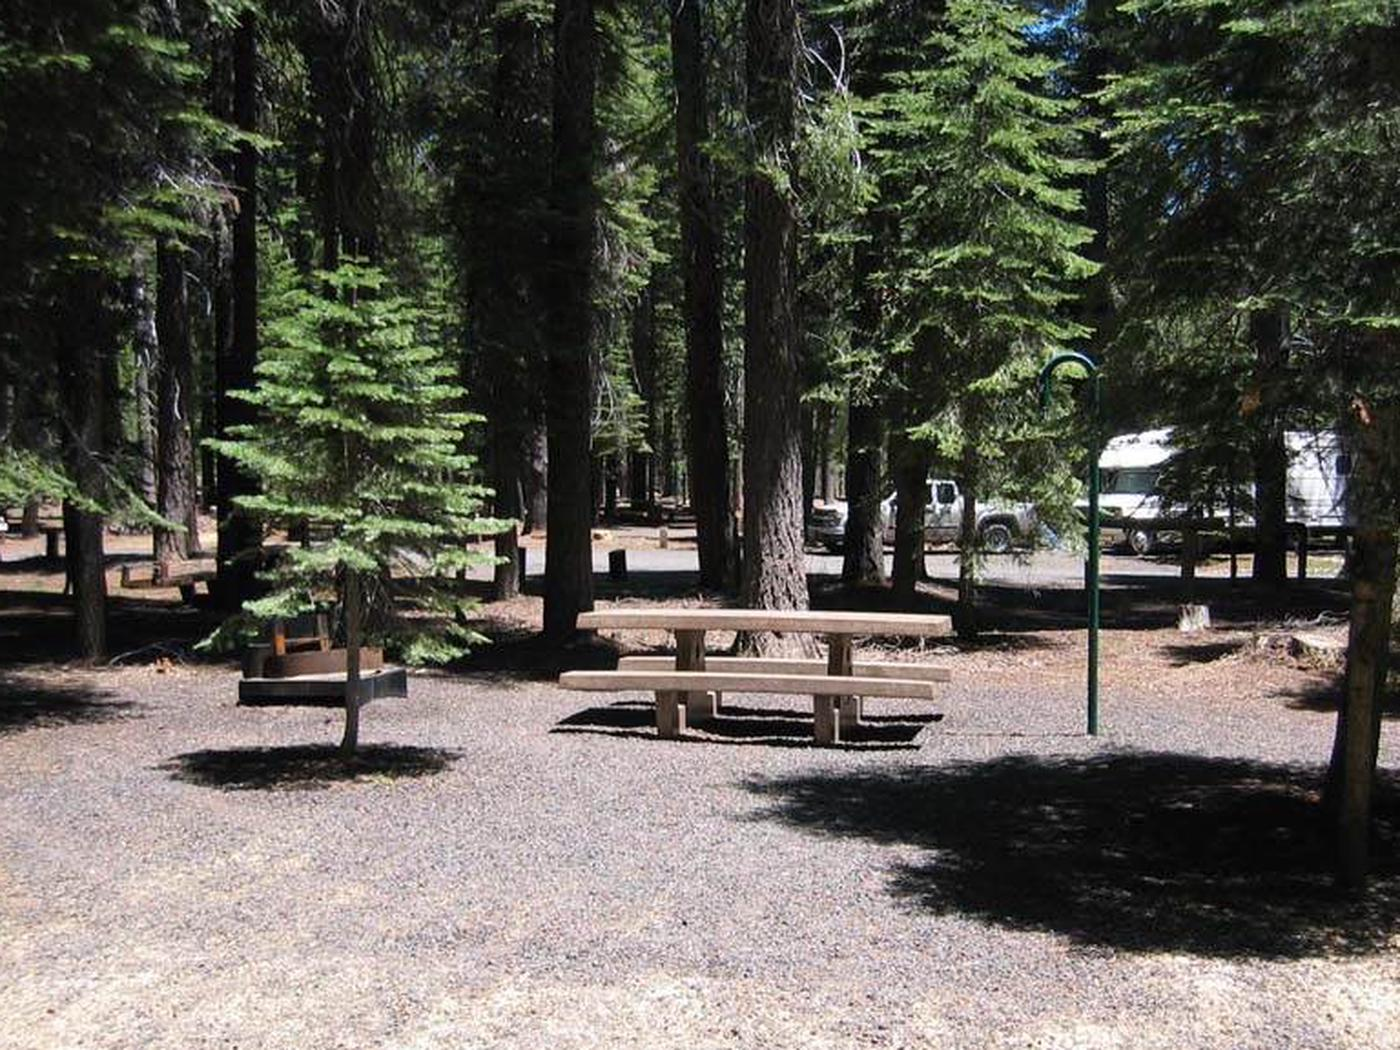 Accessible site at Horse Camp, featuring concrete table, fire ring and grill, and lantern postHorse Camp accessible campsite